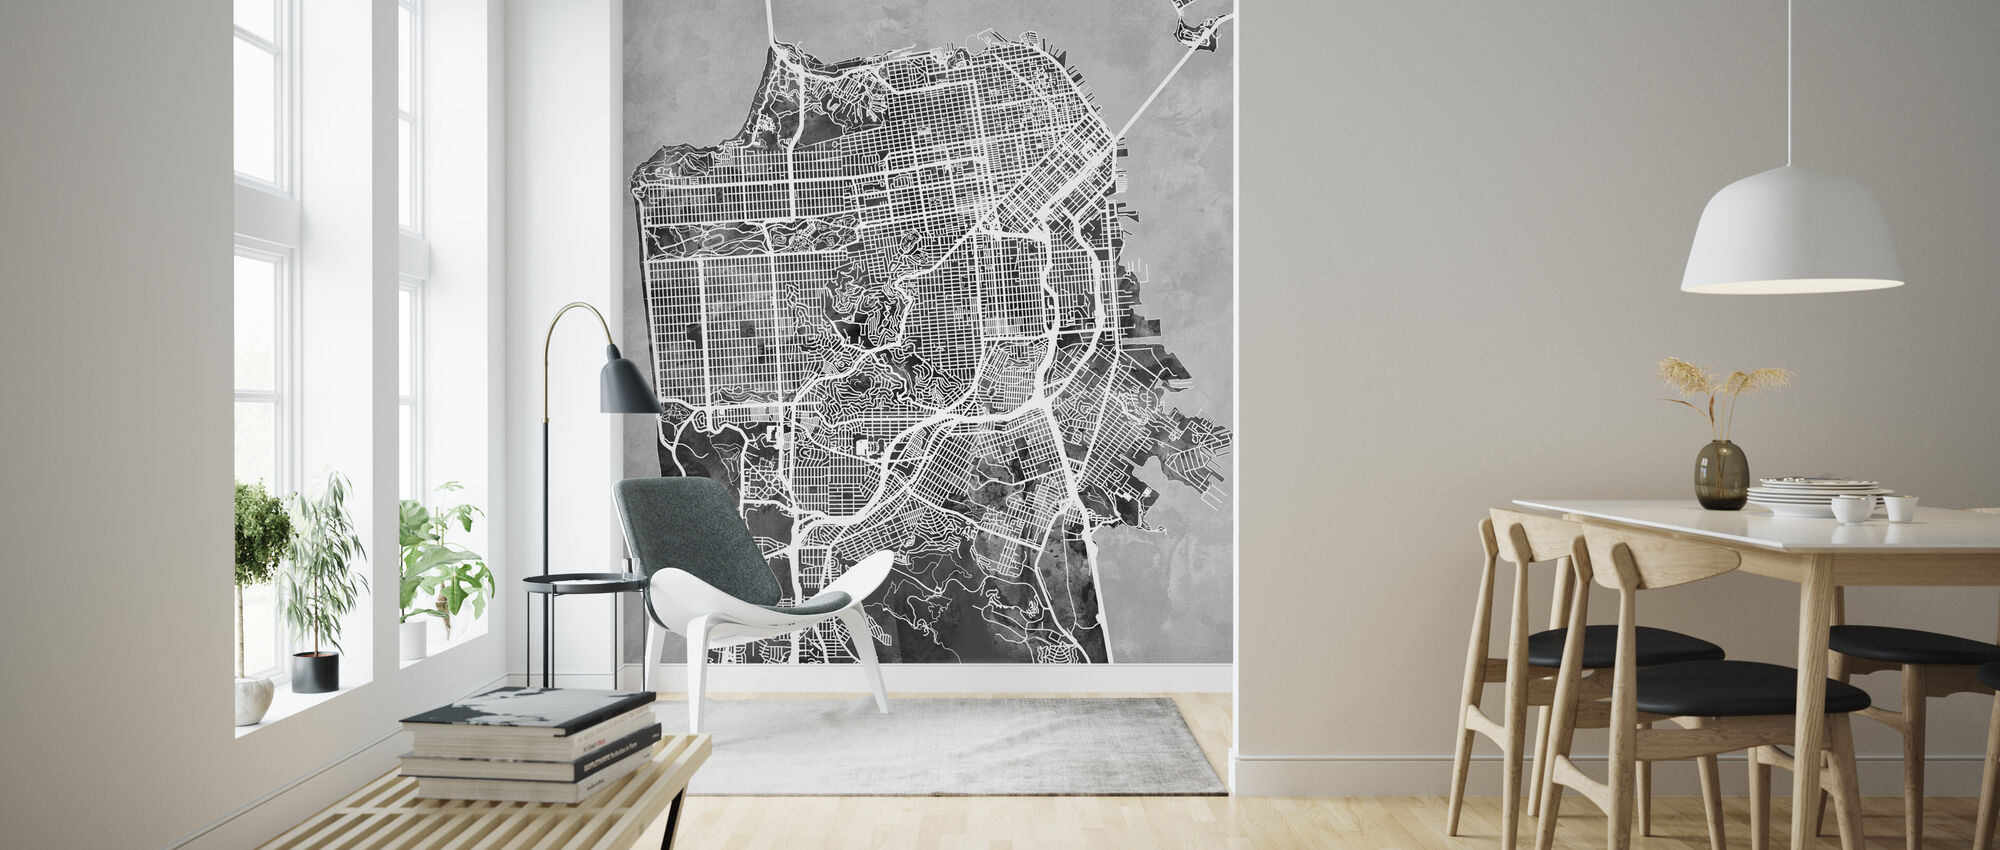 San Fransisco Street Map B/W - Wallpaper - Living Room